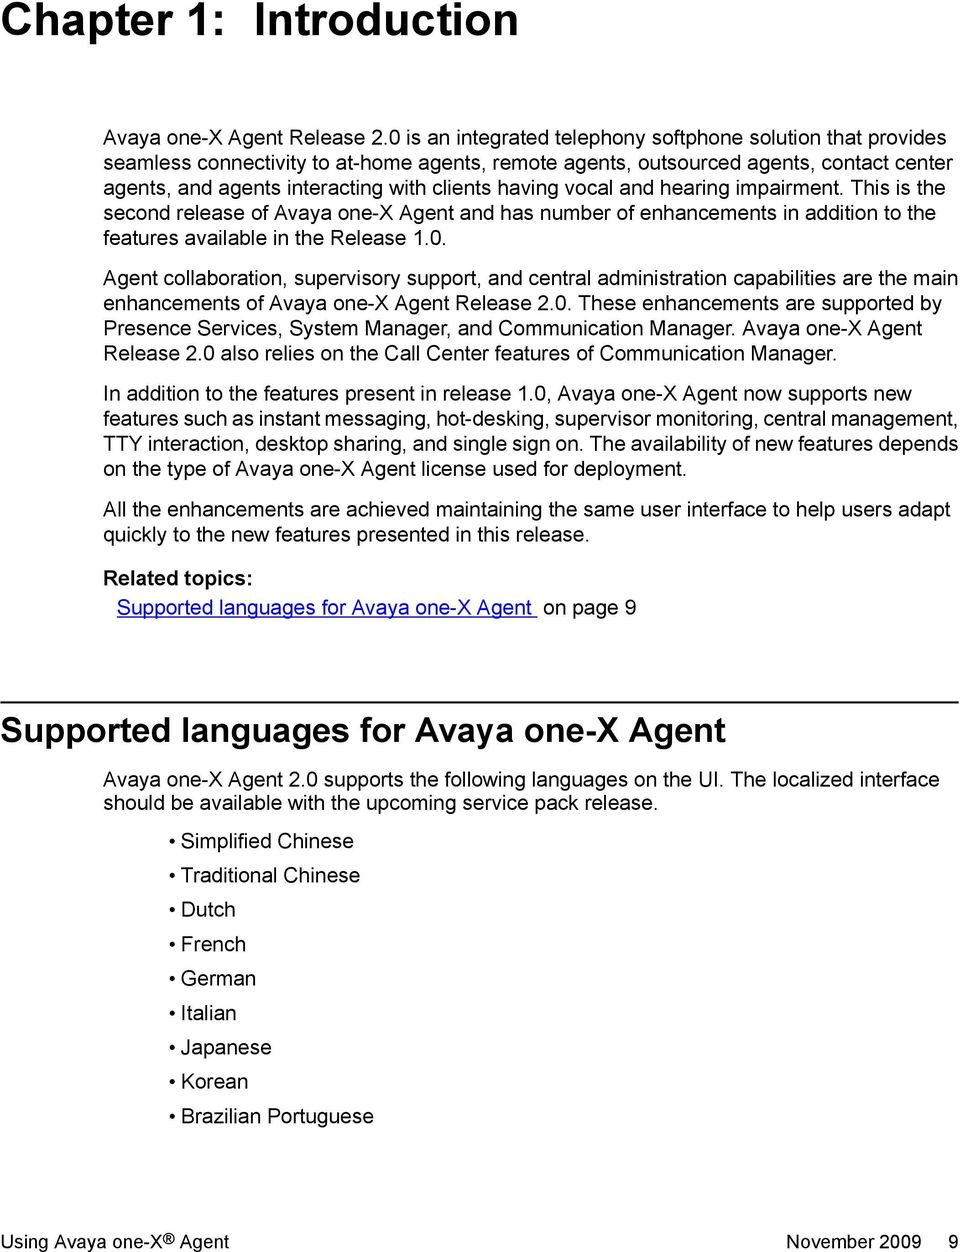 having vocal and hearing impairment. This is the second release of Avaya one-x Agent and has number of enhancements in addition to the features available in the Release 1.0.